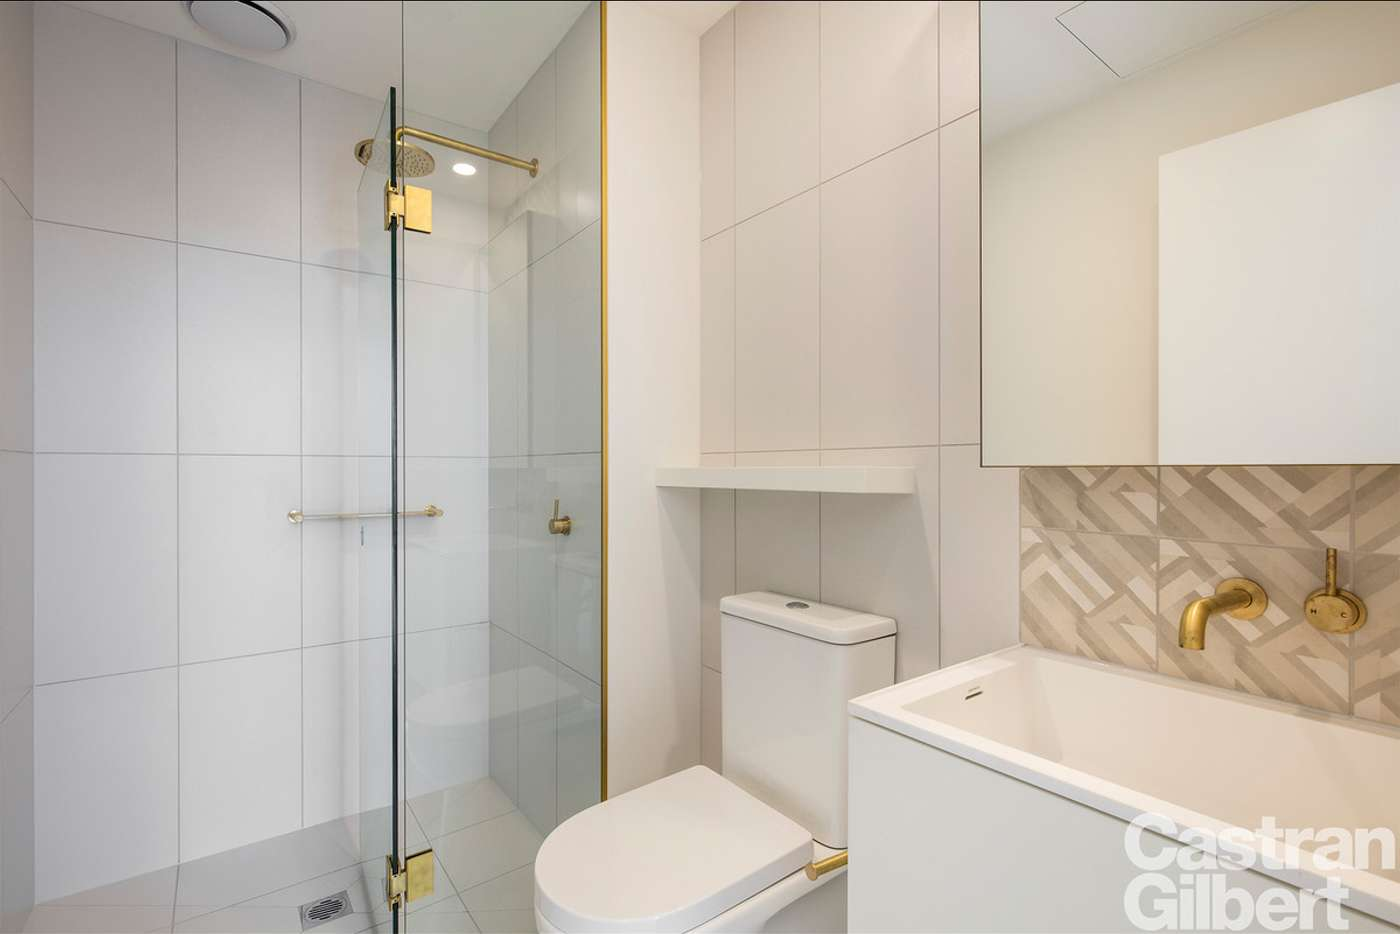 Fifth view of Homely apartment listing, 1602/478 St Kilda Road, Melbourne VIC 3004